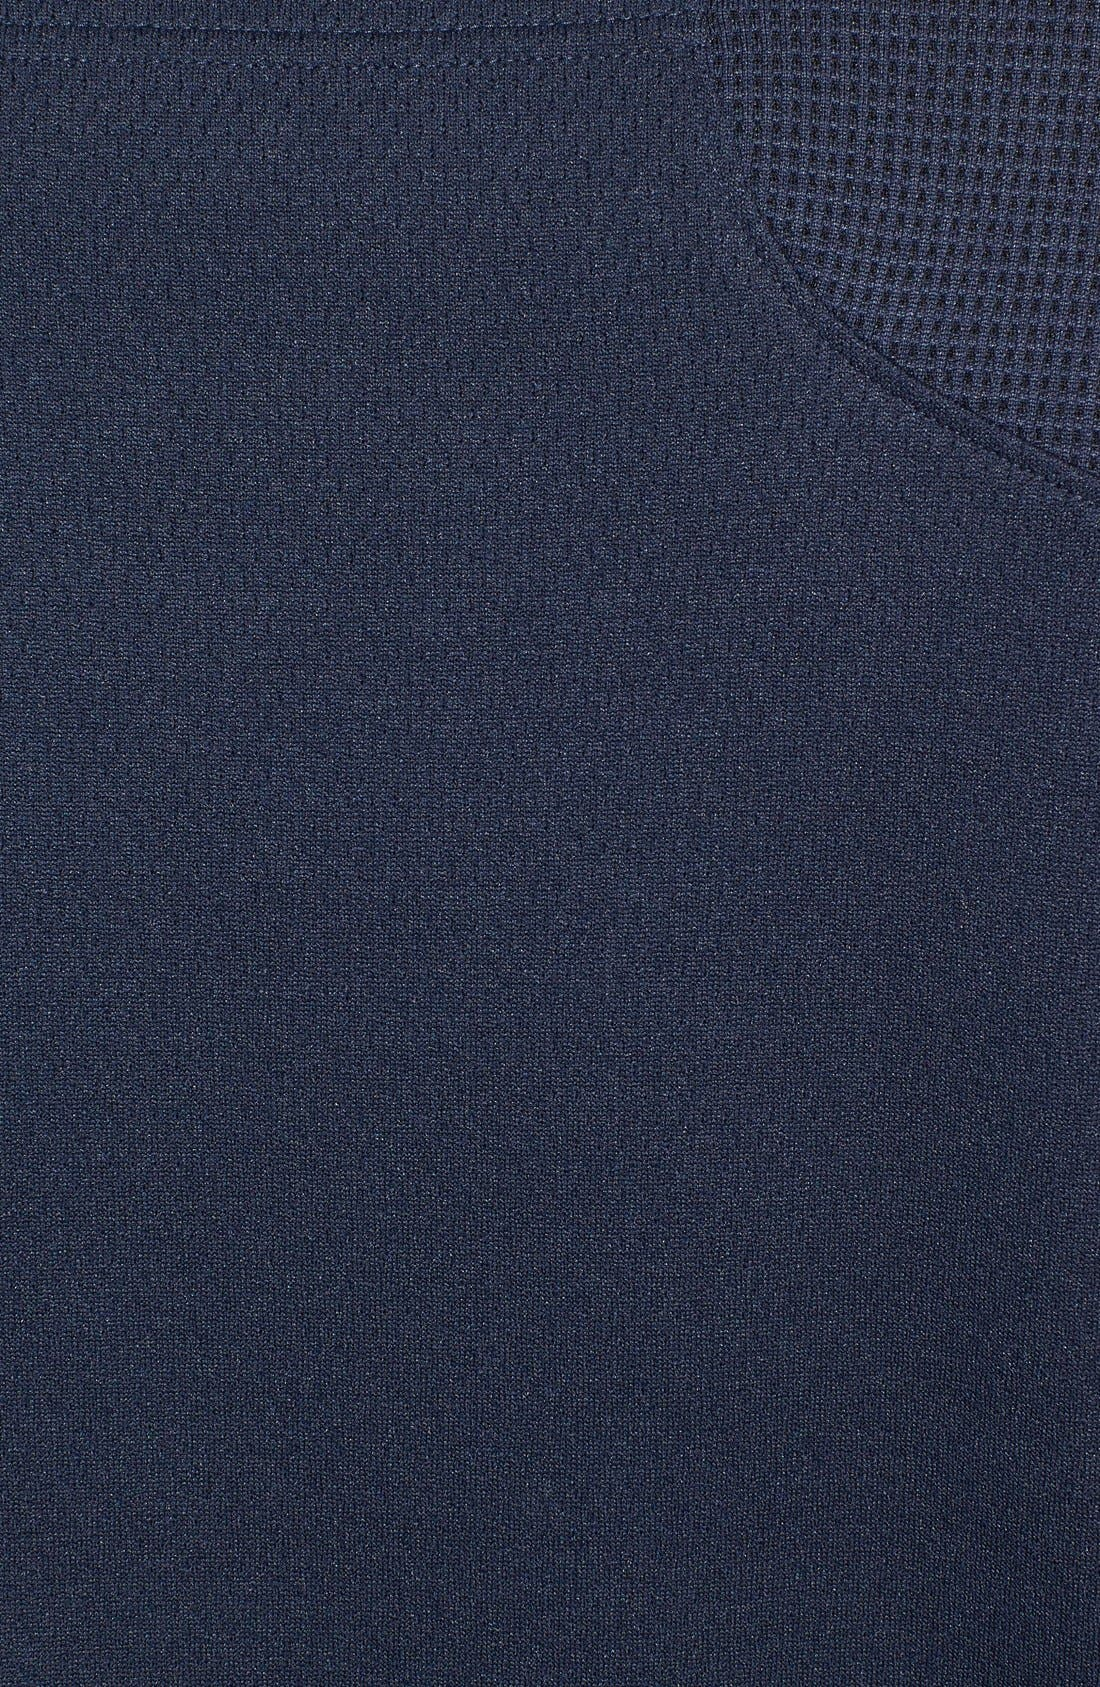 Los Angeles - Edge DryTec Moisture Wicking Half Zip Pullover,                             Alternate thumbnail 3, color,                             420